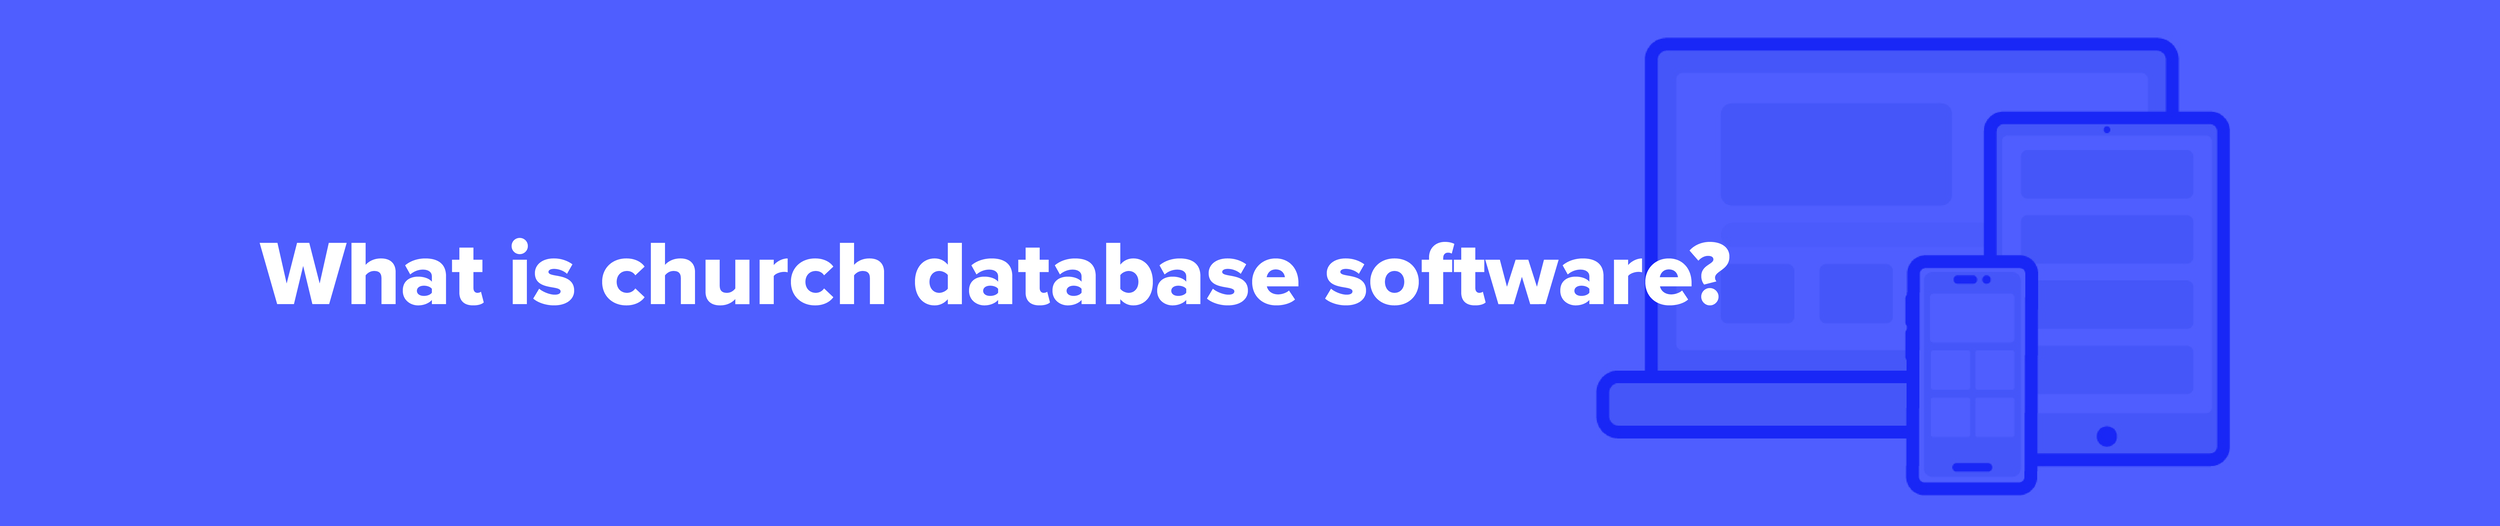 What is church database software?